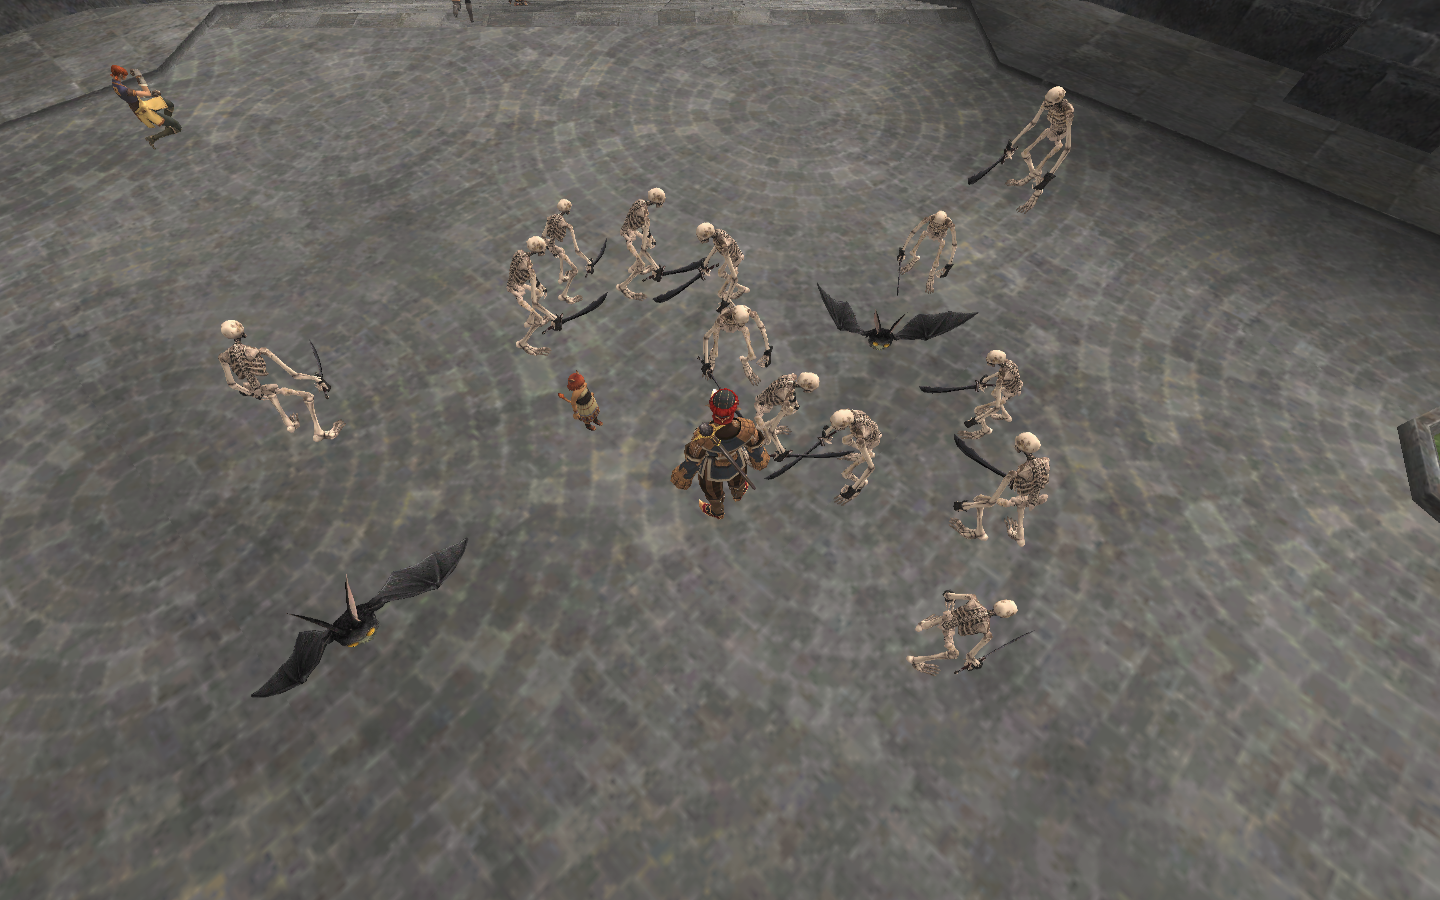 baelorn ffxi first tanked fight empires jorm with kurayami died beat that gadr where down definitely keep minority sprit nostalgia always favoritebest lookingfunniest screenshots incoming nidhogg time your khim looong think this